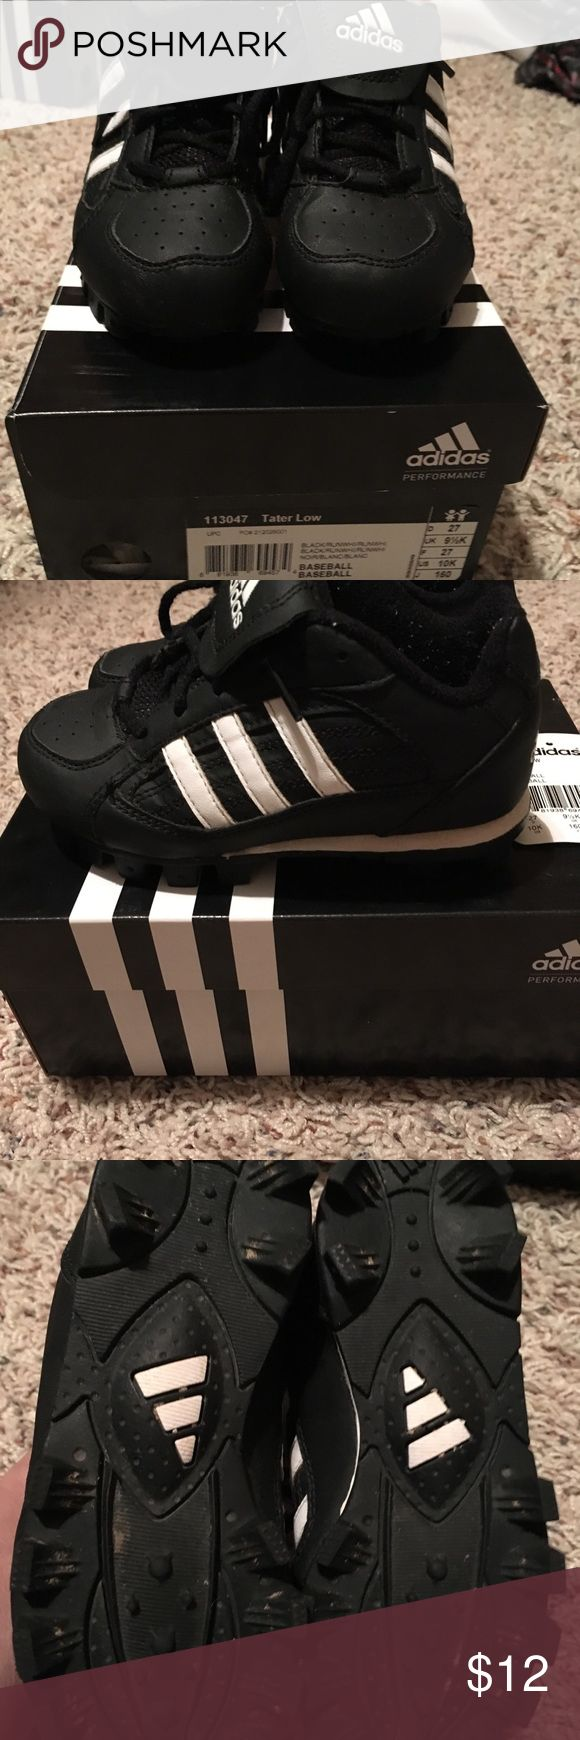 Kids Adidas baseball cleats in size 10k with box Boys Adidas baseball cleats in size 10k with box, tater low-gently used adidas Shoes Sneakers